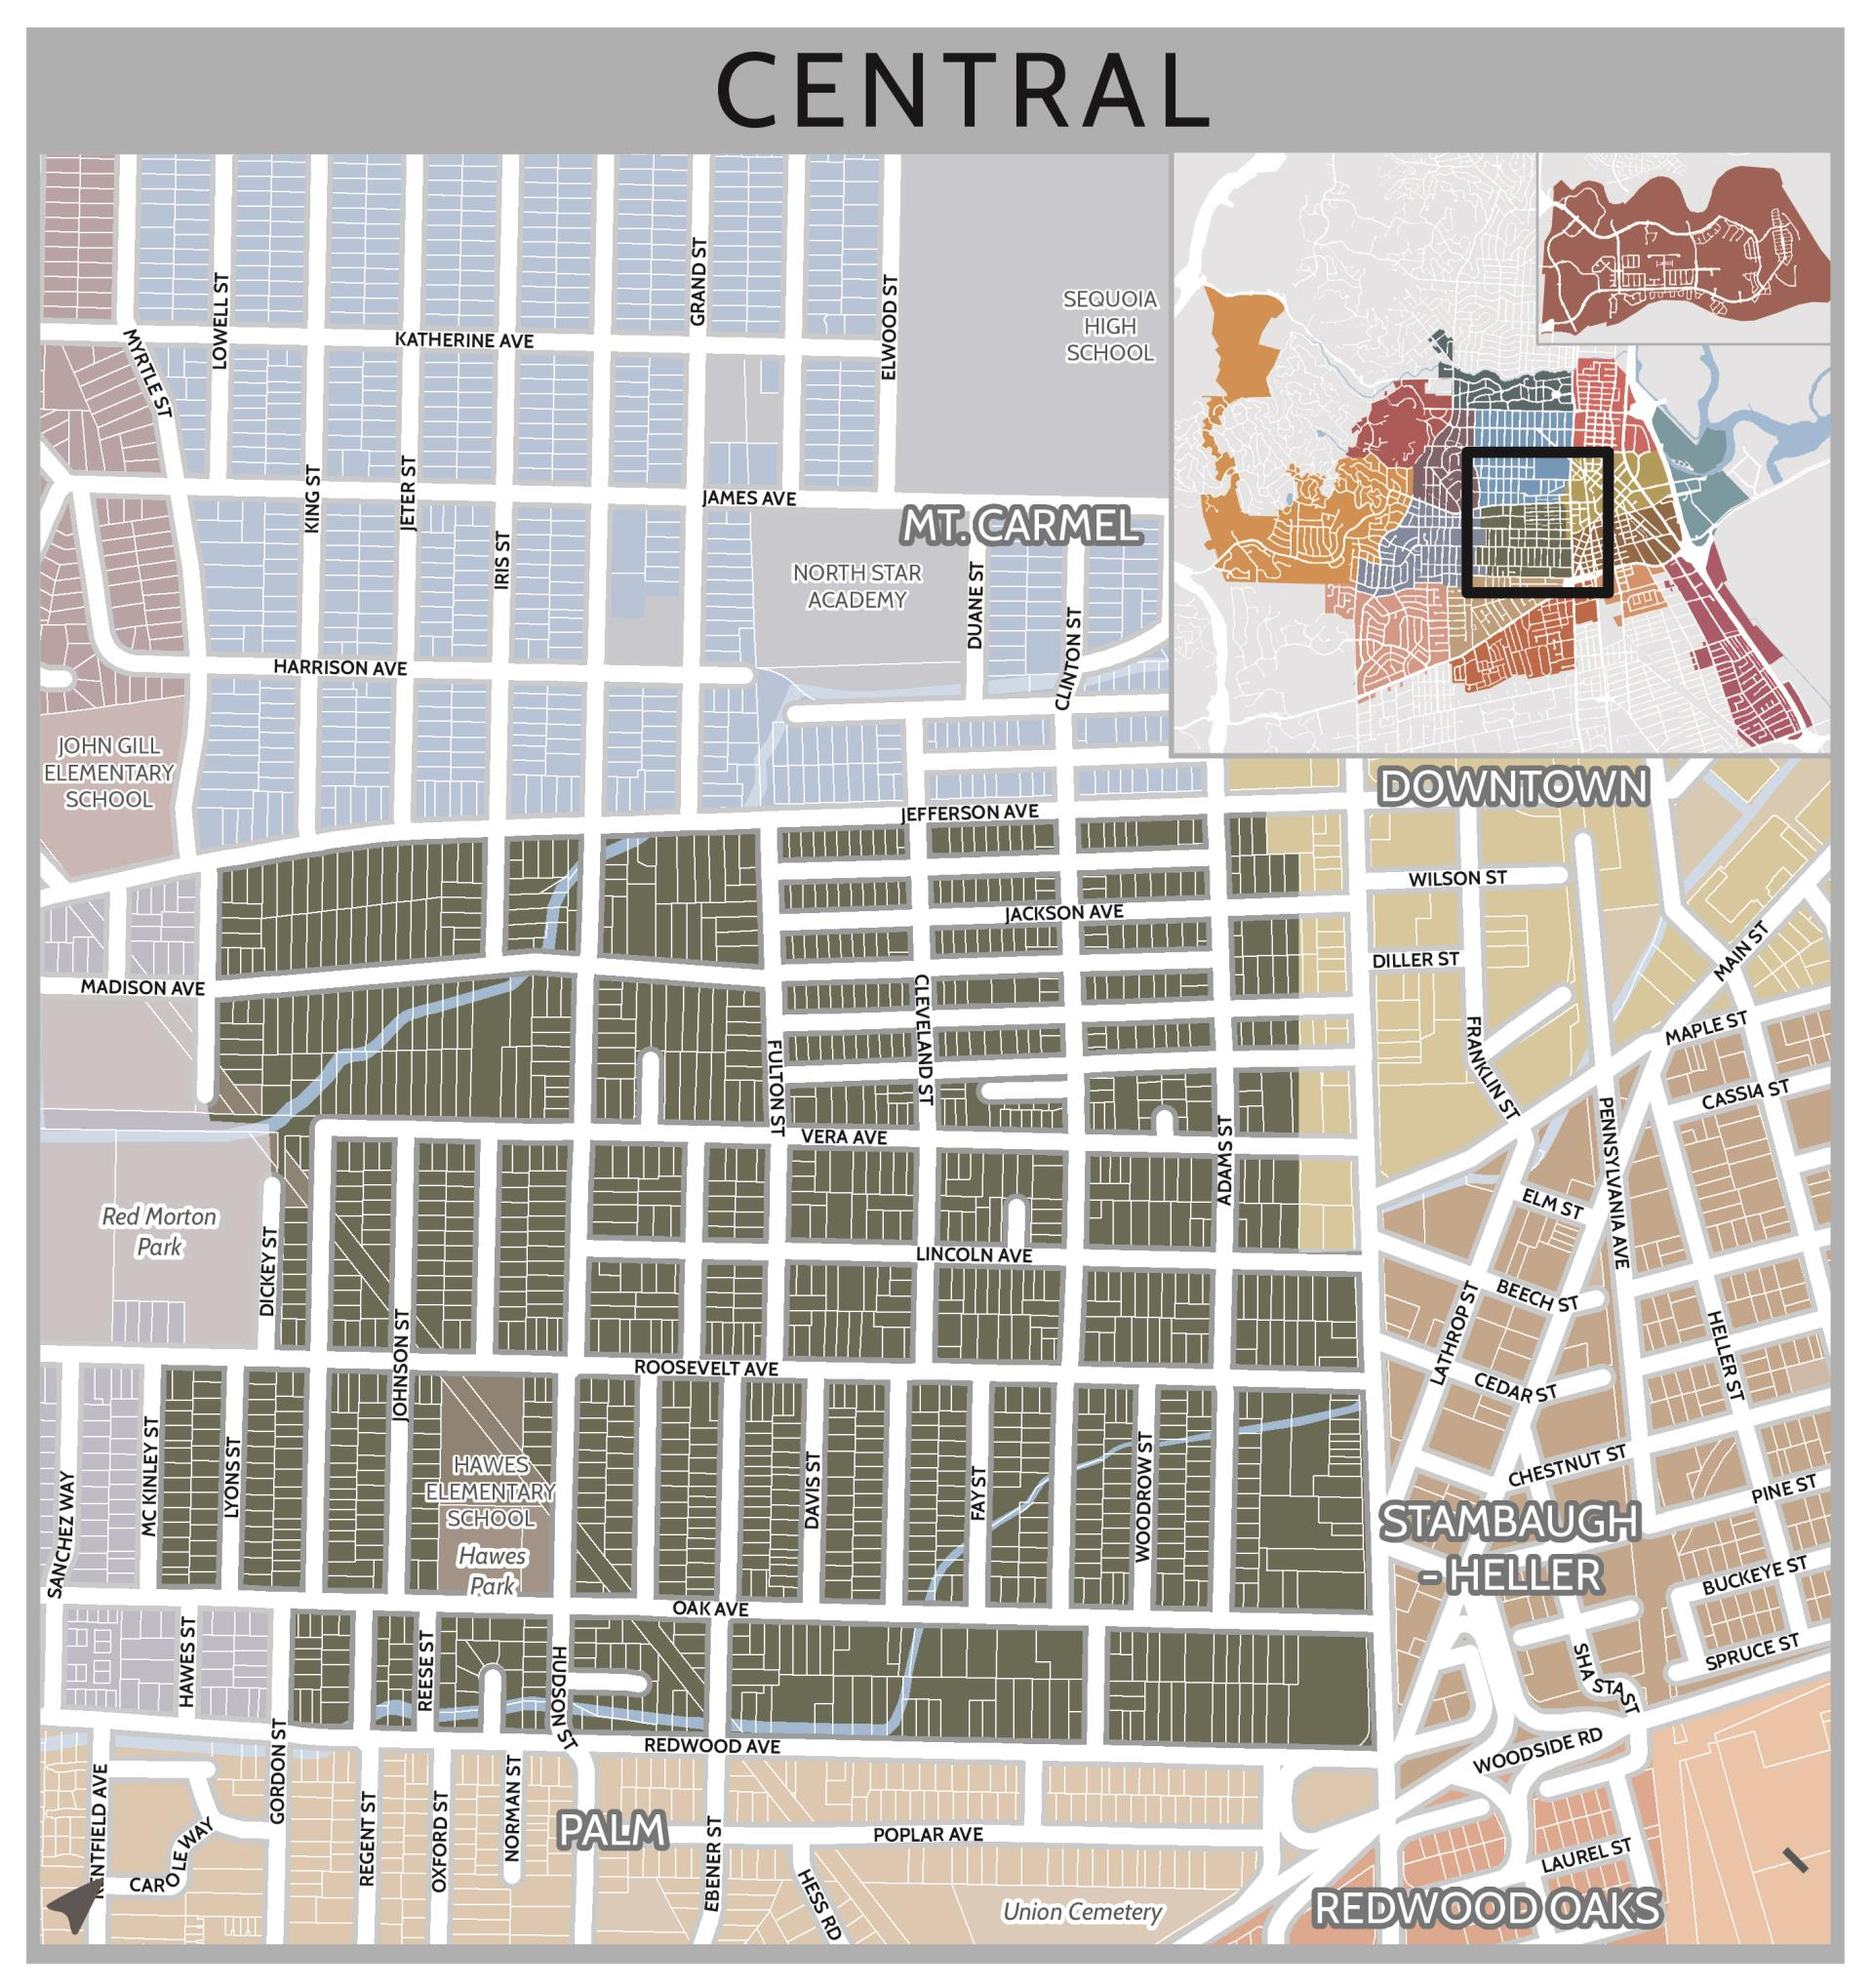 Central-01